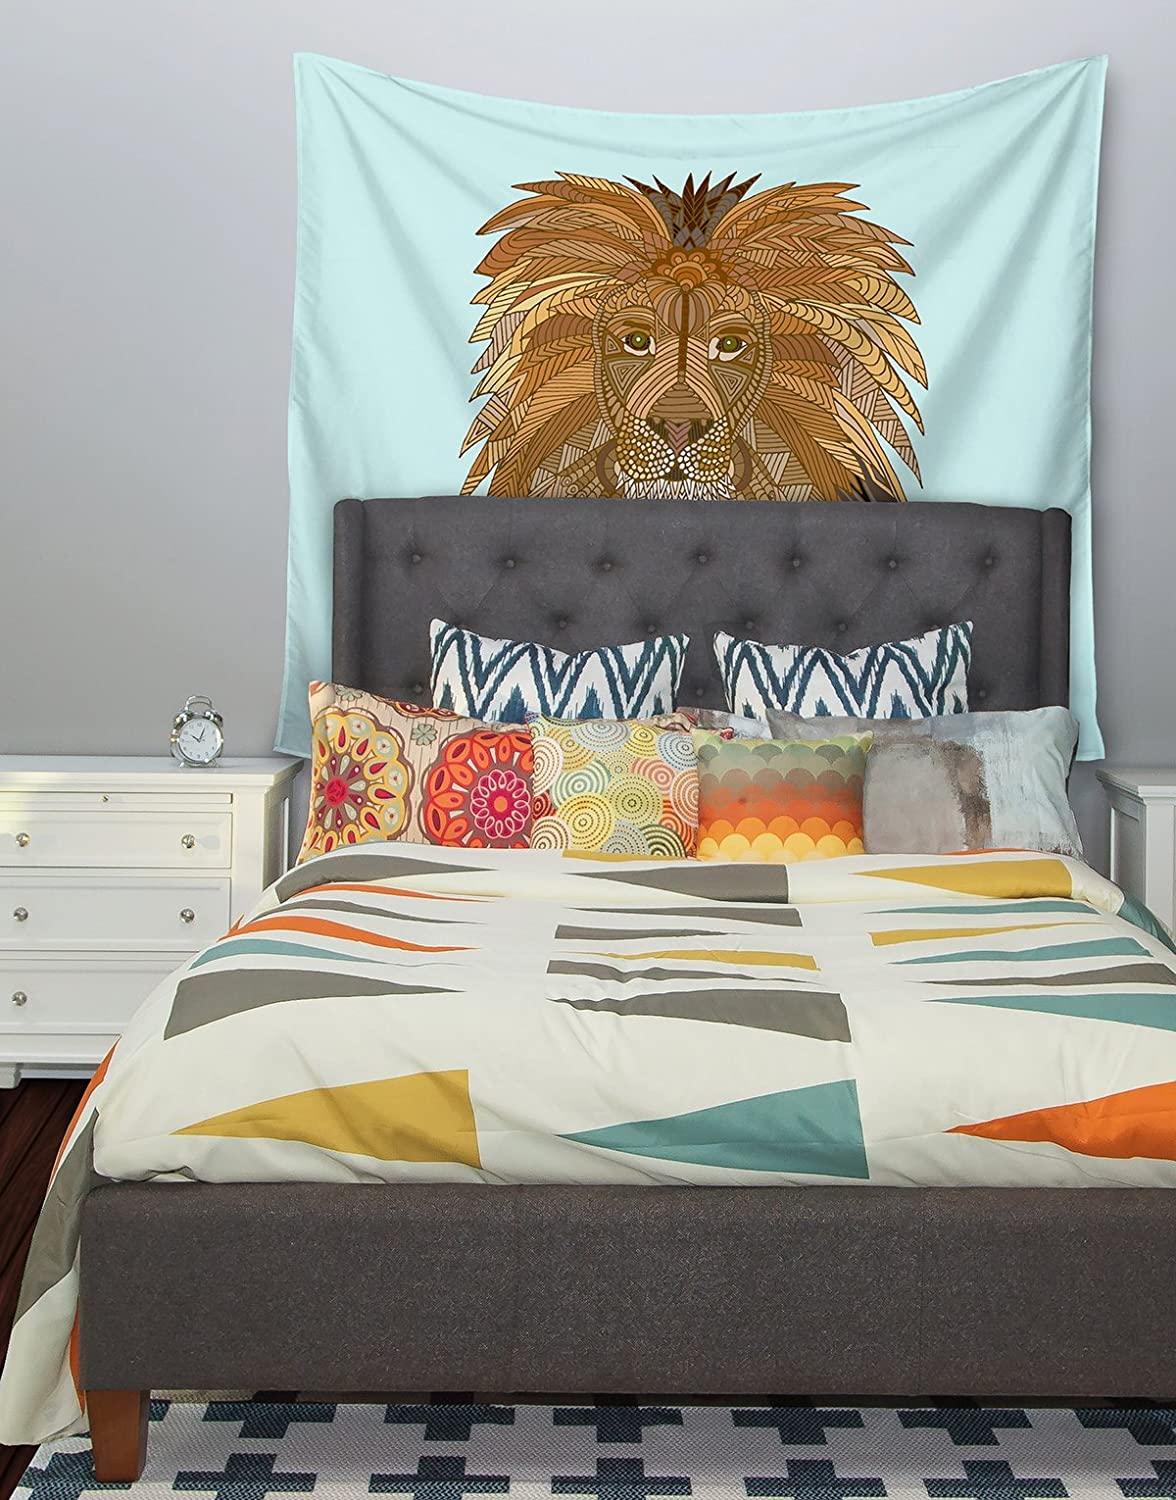 51 X 60 Kess InHouse Art Love Passion Lion Blue Brown Wall Tapestry